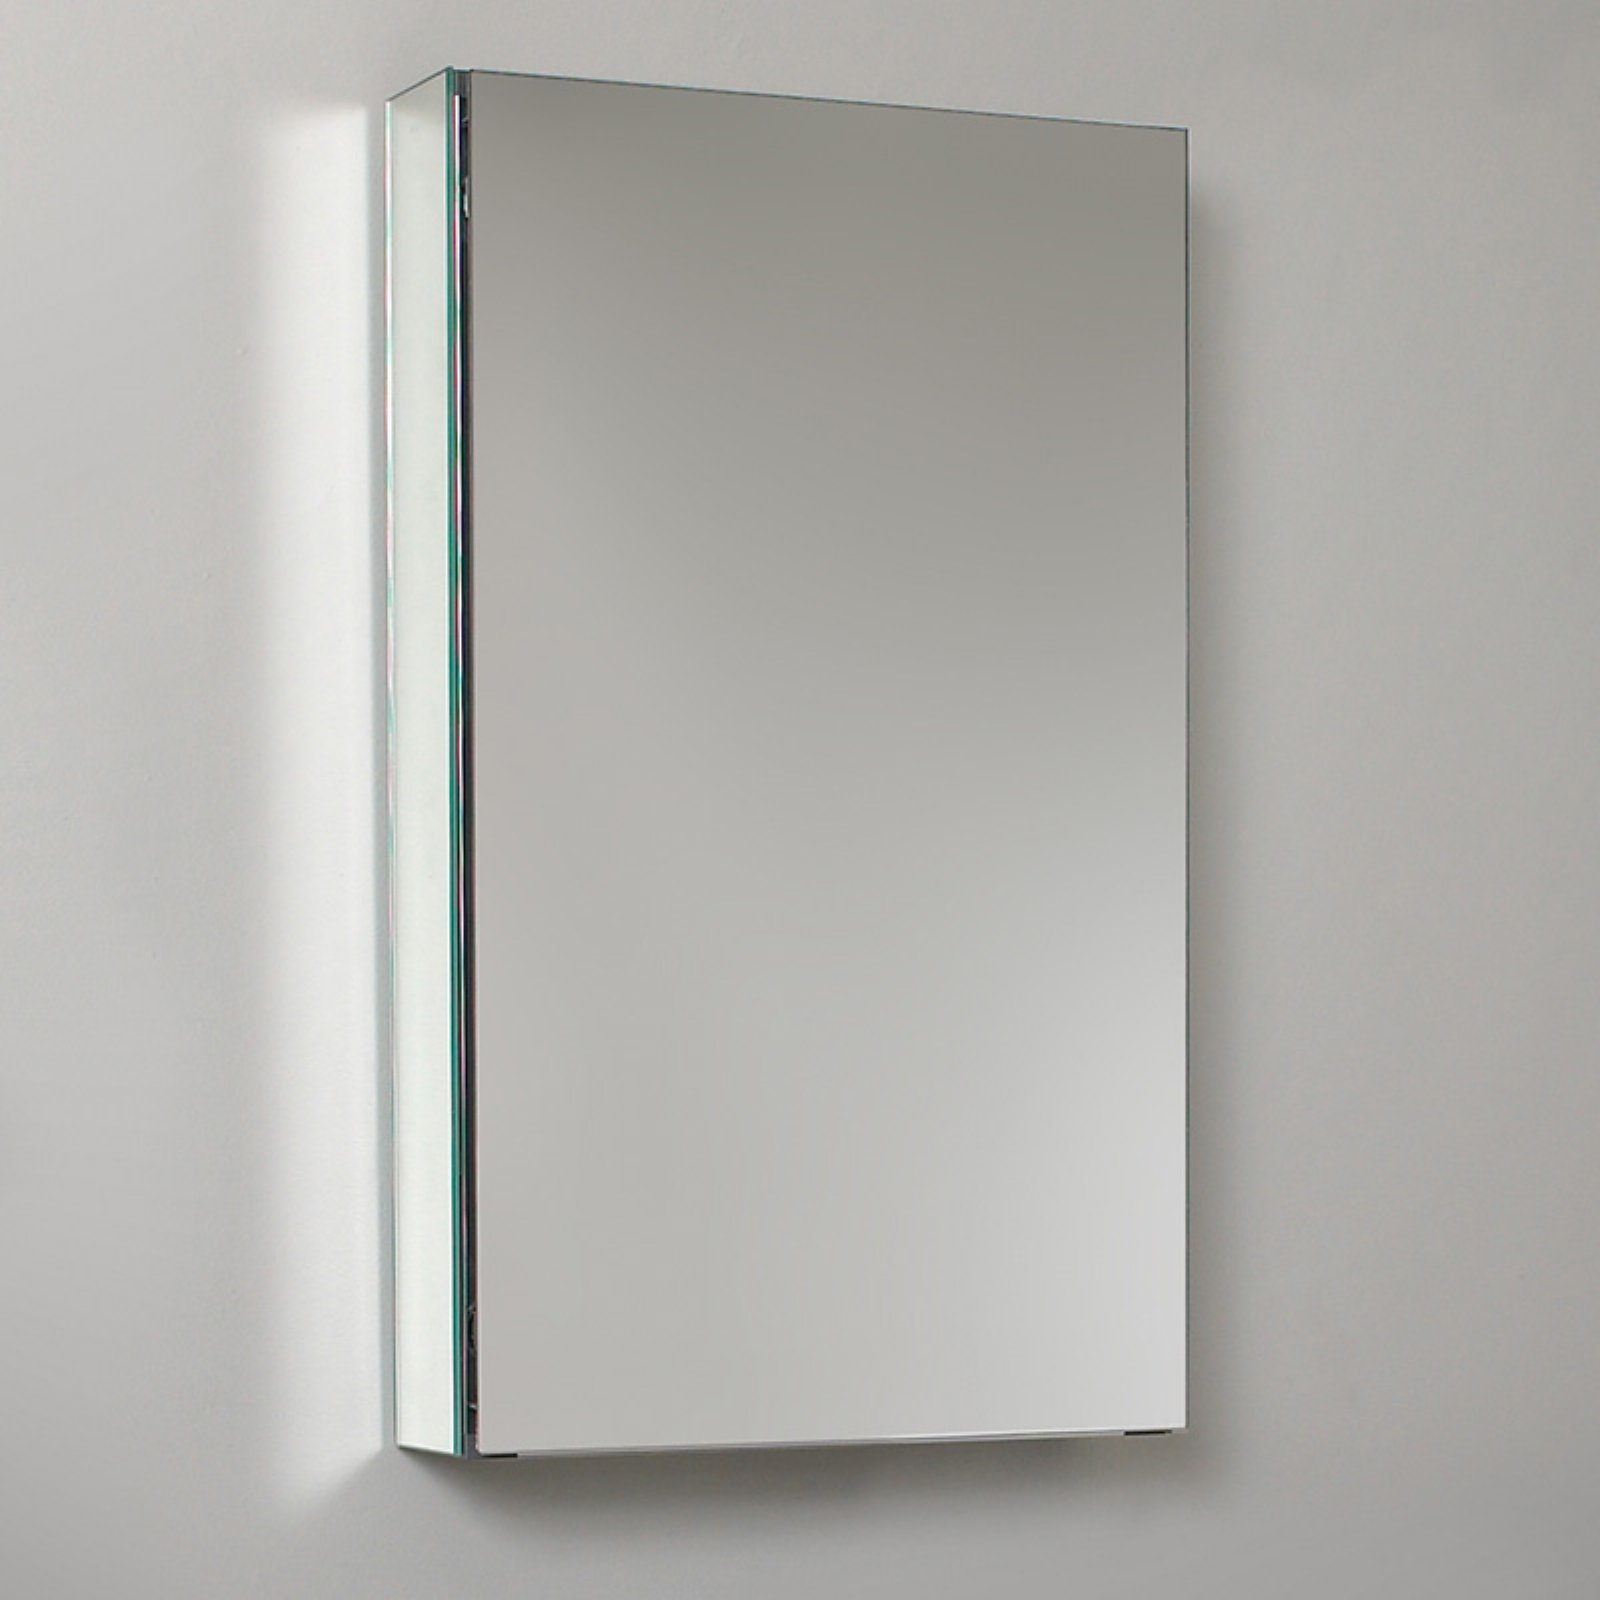 Fresca Medicine Cabinet with Mirrors 15W x 26H in. by Fresca